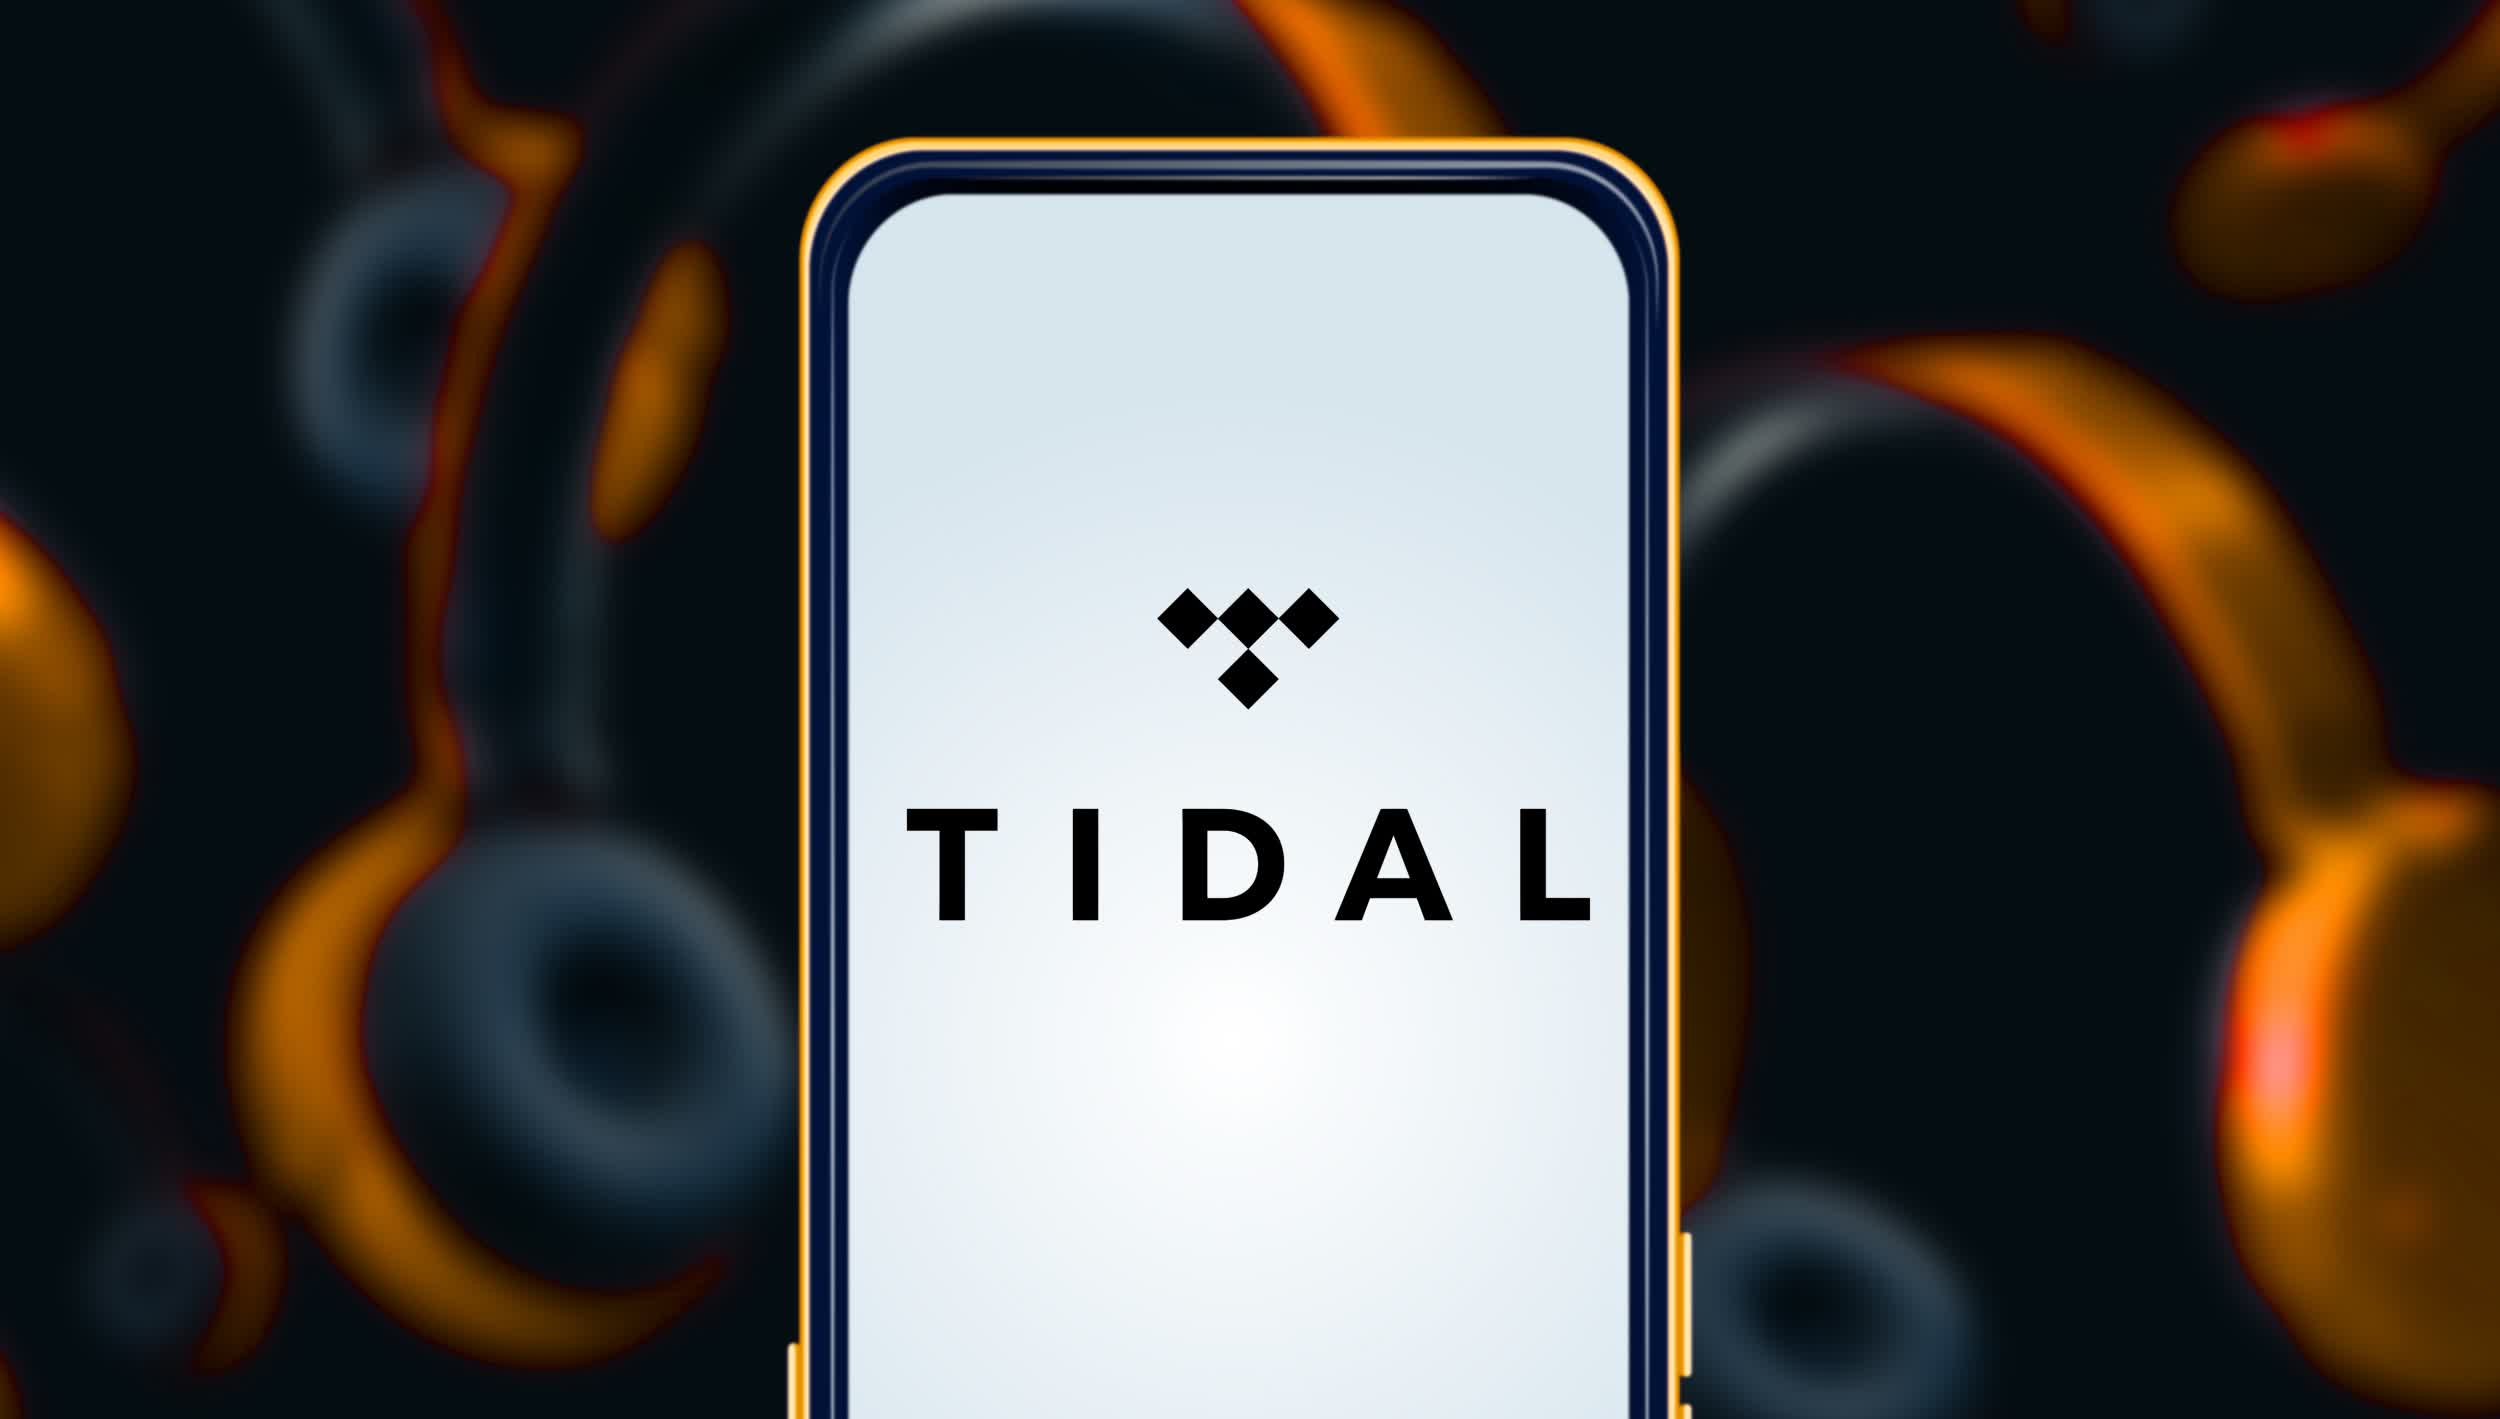 Square is buying a majority stake in streaming service Tidal for $297 million